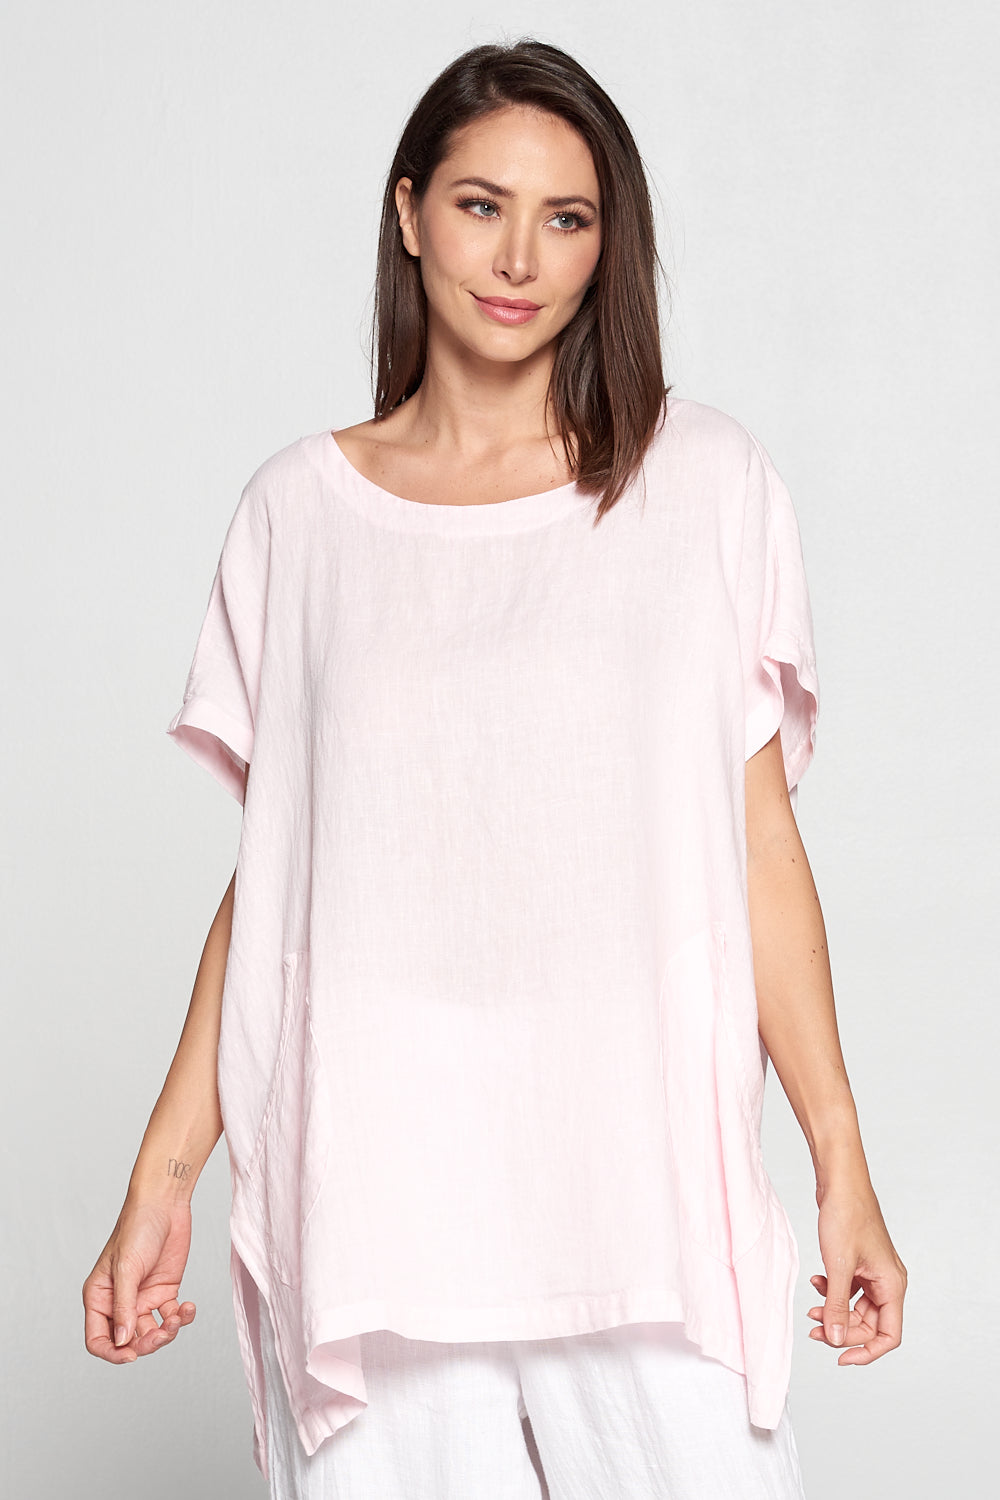 Match Point Linen Round Neck Boxy Tunic with Front Pockets - Pink - HLT430 - Lori's Lovelies